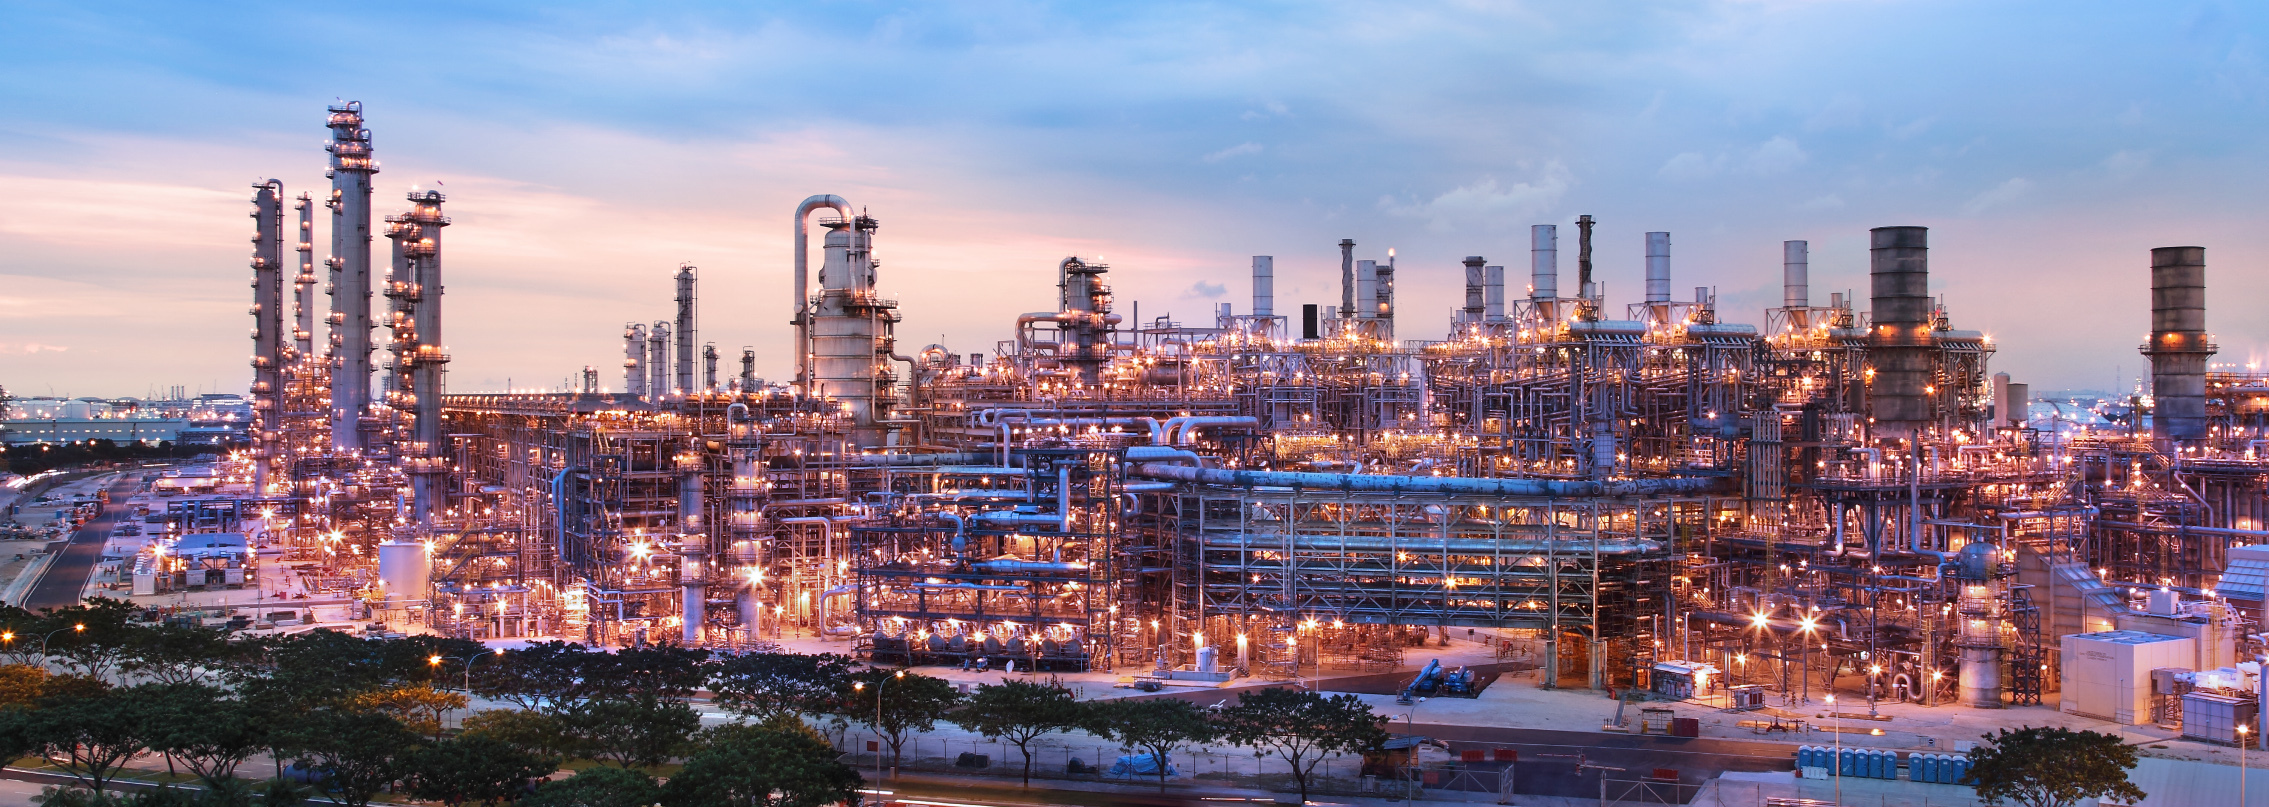 Singapore_Chemical_Plant_Expansion_photo.jpg